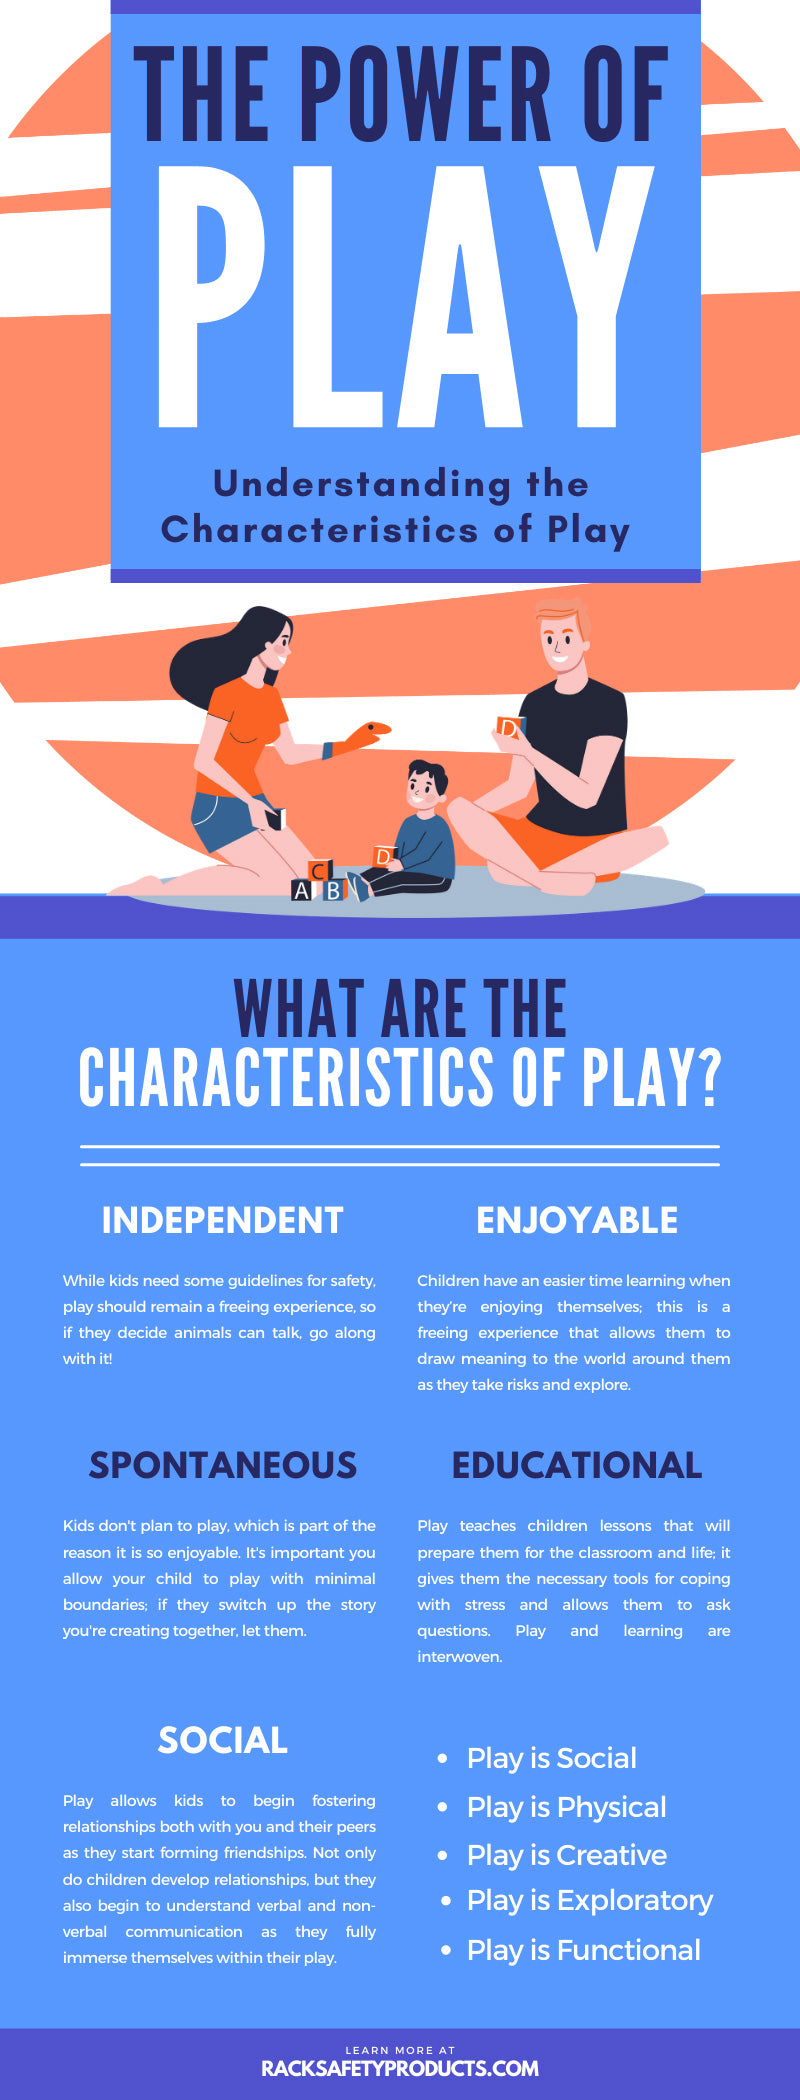 The Power of Play: Understanding the Characteristics of Play